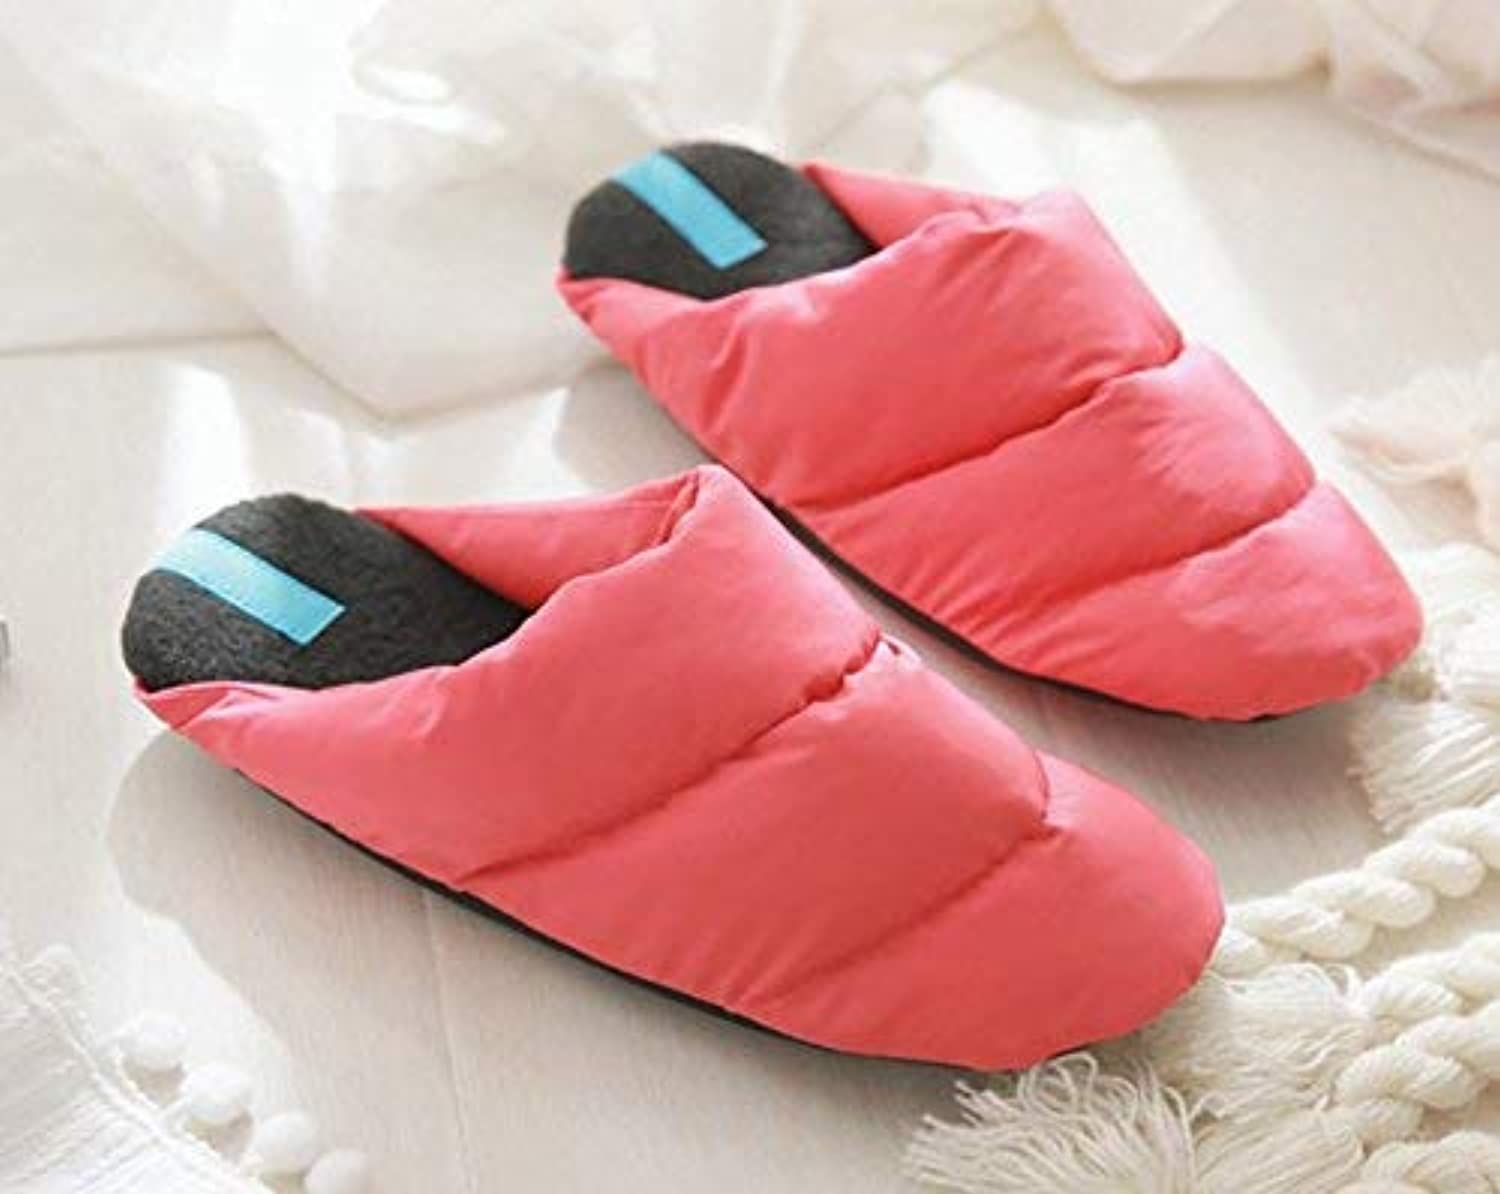 JaHGDU Ladies Casual Wool Slippers Warm Down in Autumn and Winter Wool Slippers Red Pink Beige Slippers for Women